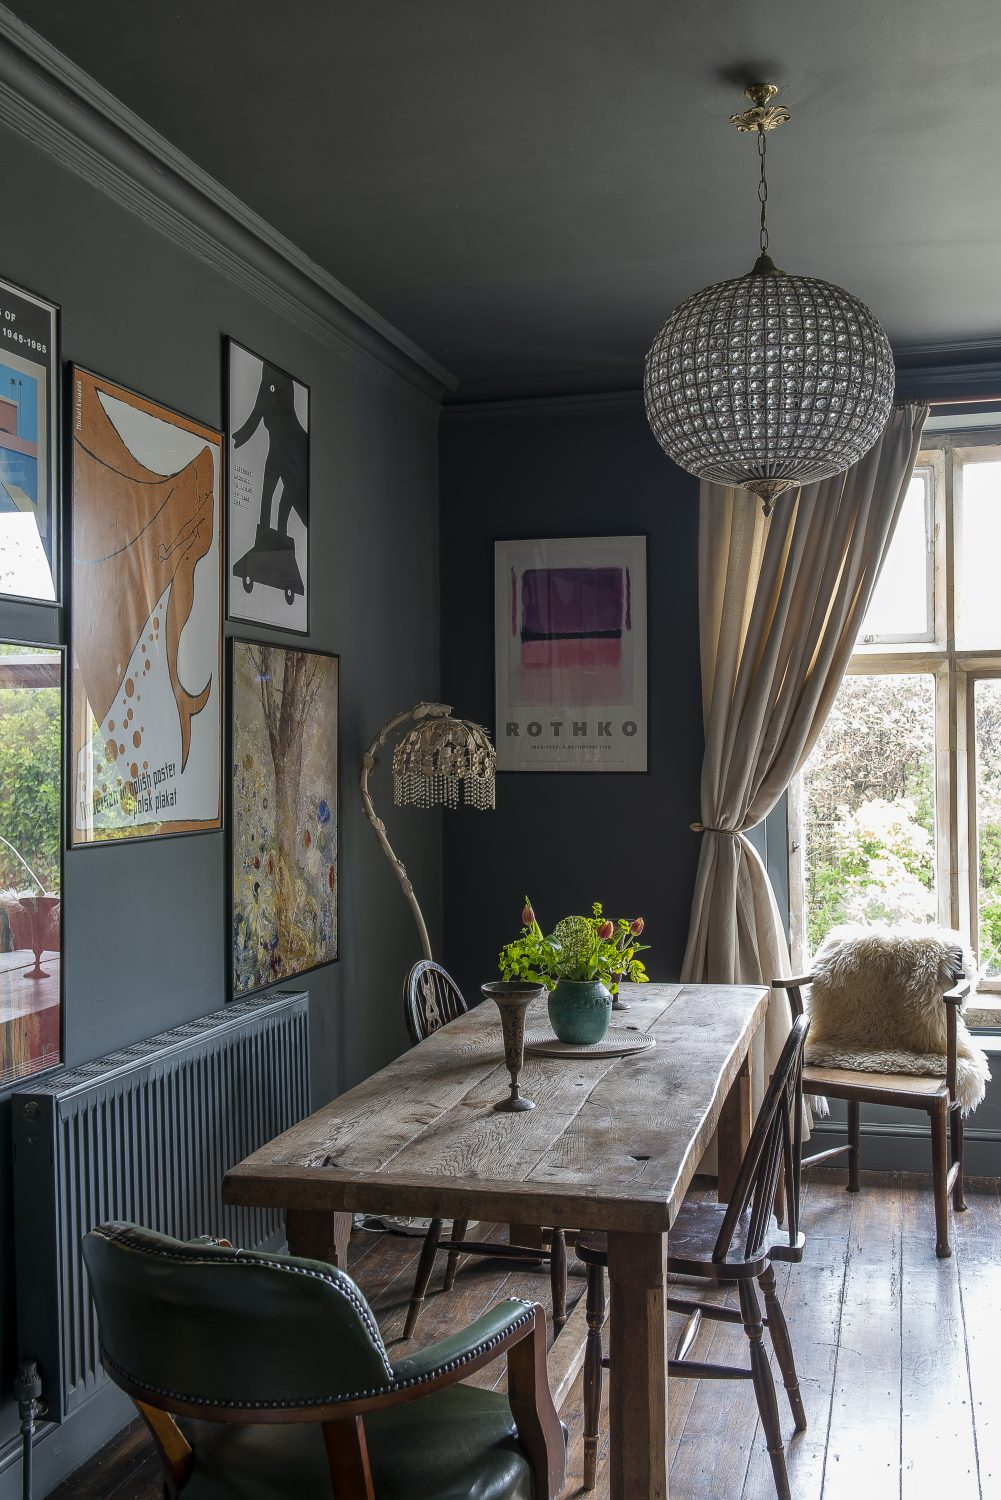 A cosy sitting room, used as a games room, features the original Delft tiles around the fireplace and stone-mullioned windows; opposite the fireplace, a refectory table provides the perfect place to set up a Monopoly board